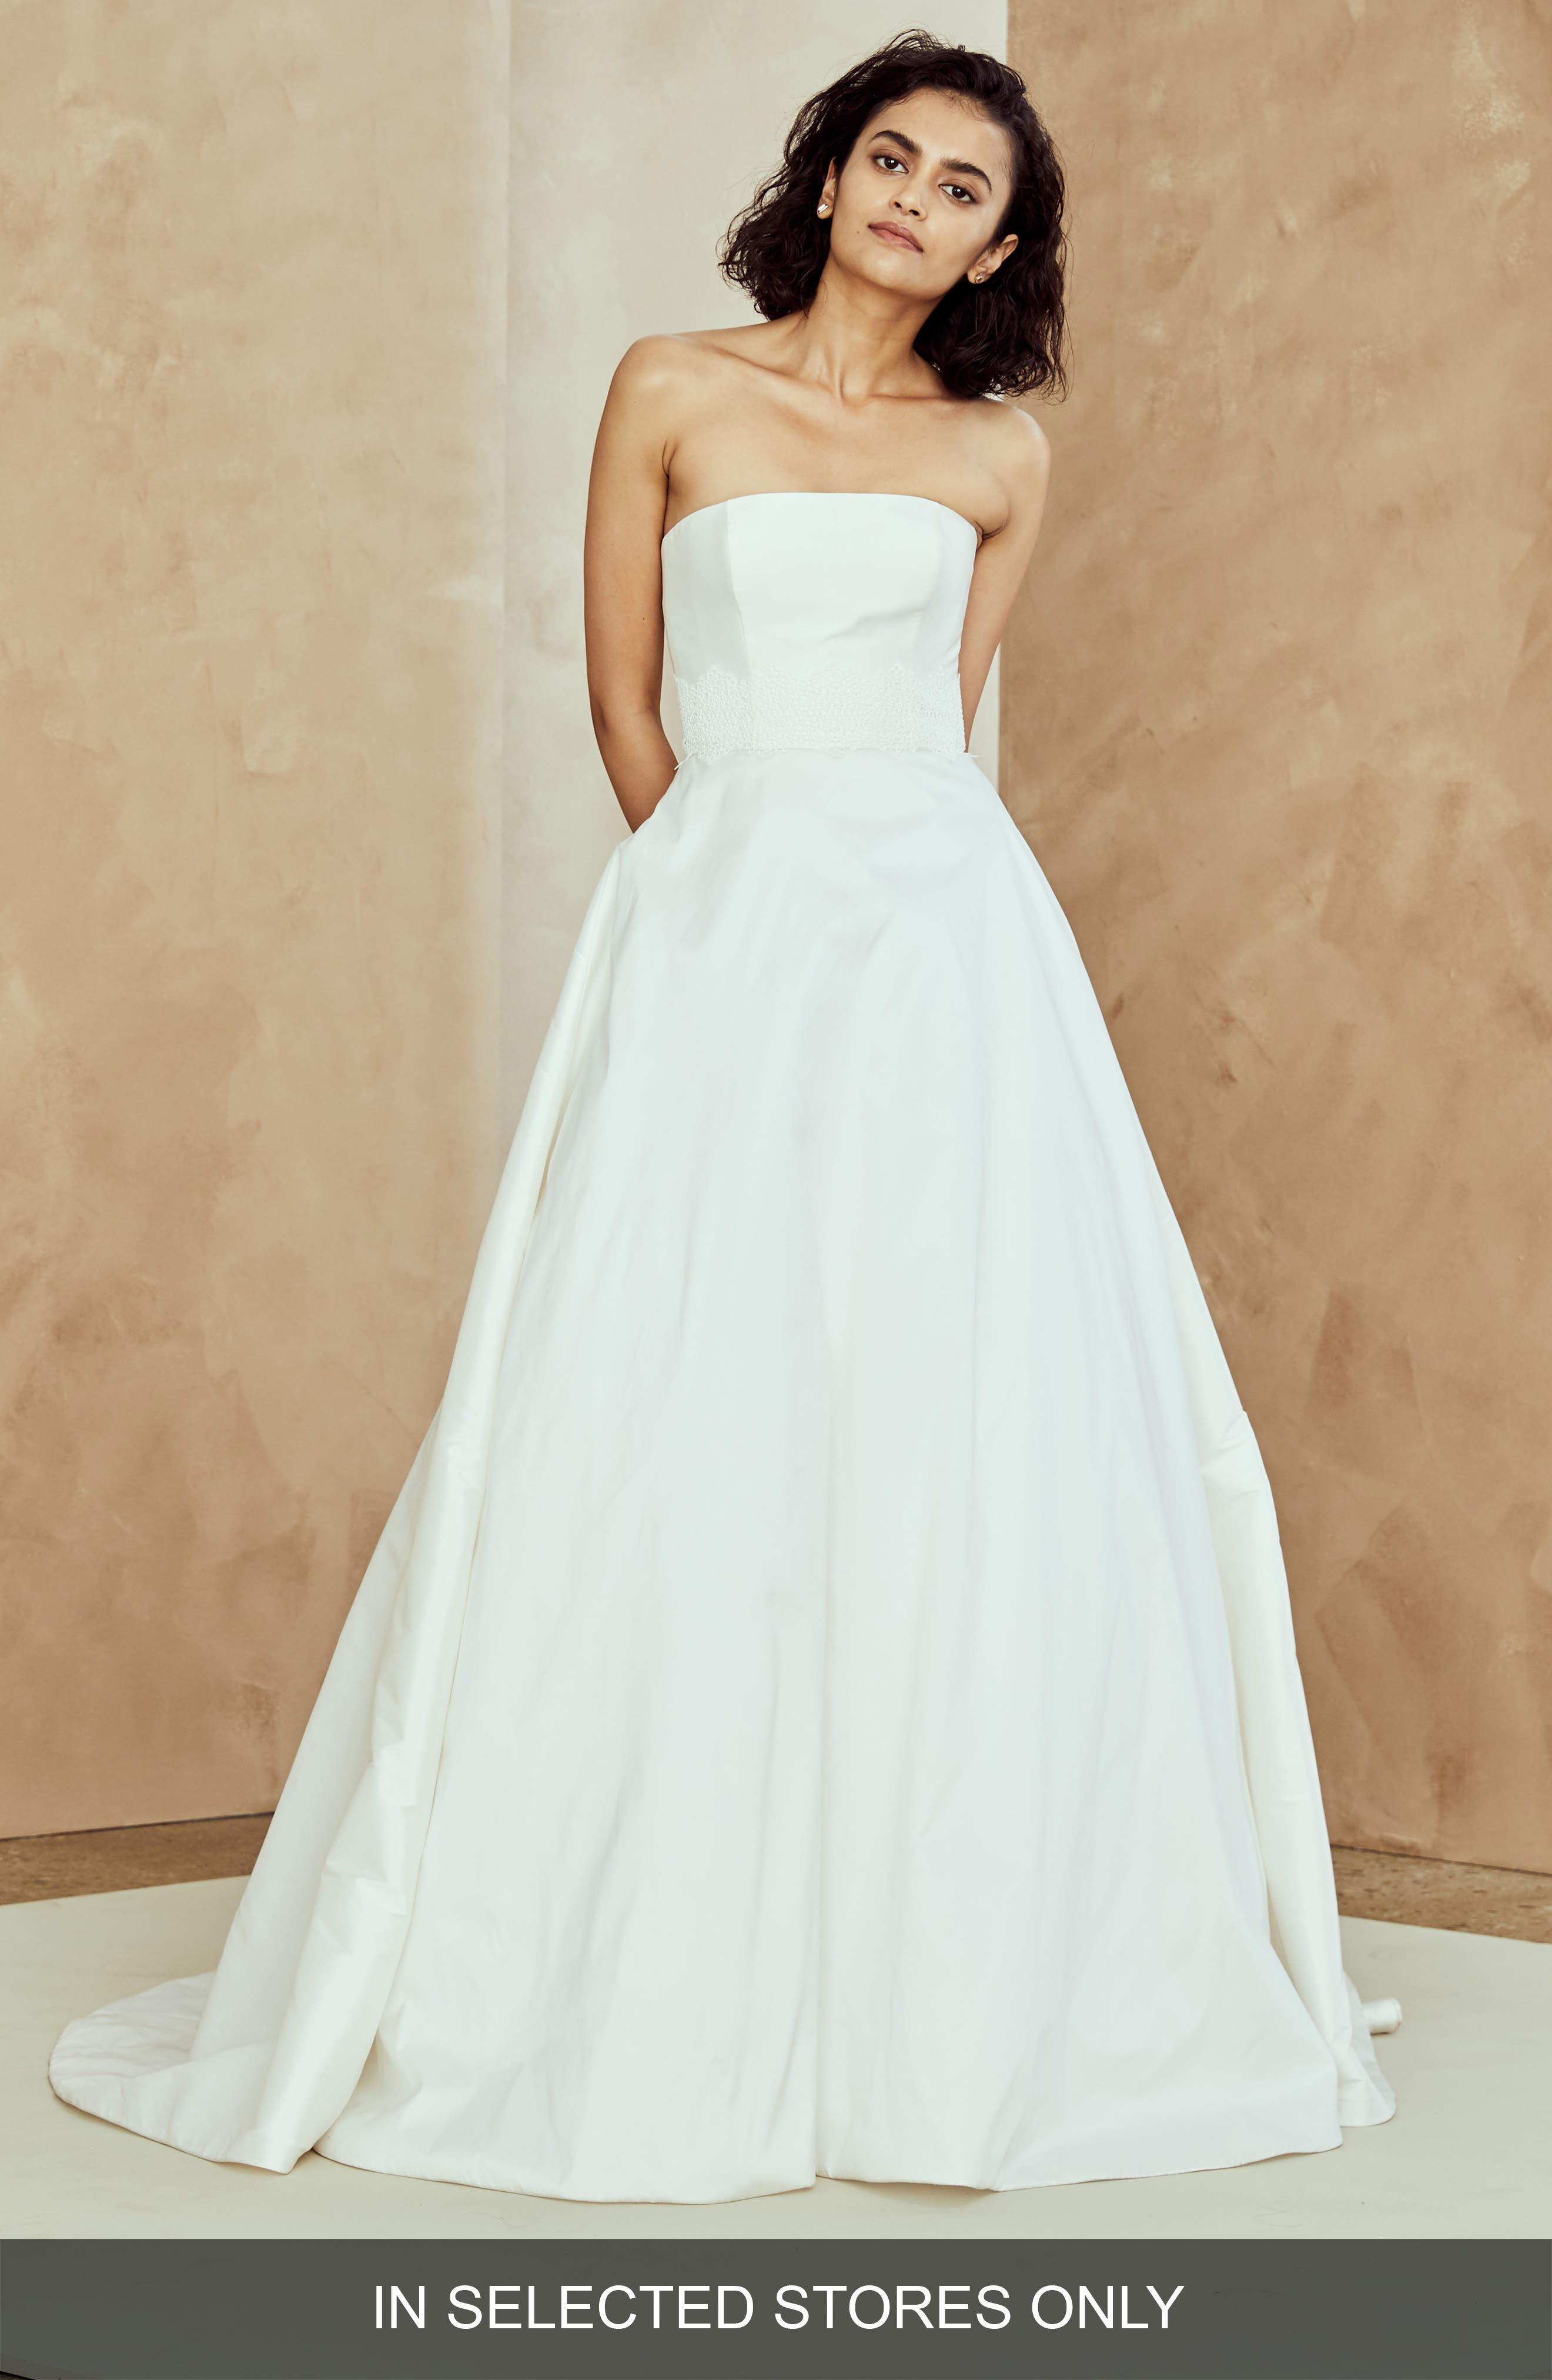 Ana Strapless Ballgown,                             Main thumbnail 1, color,                             IVORY